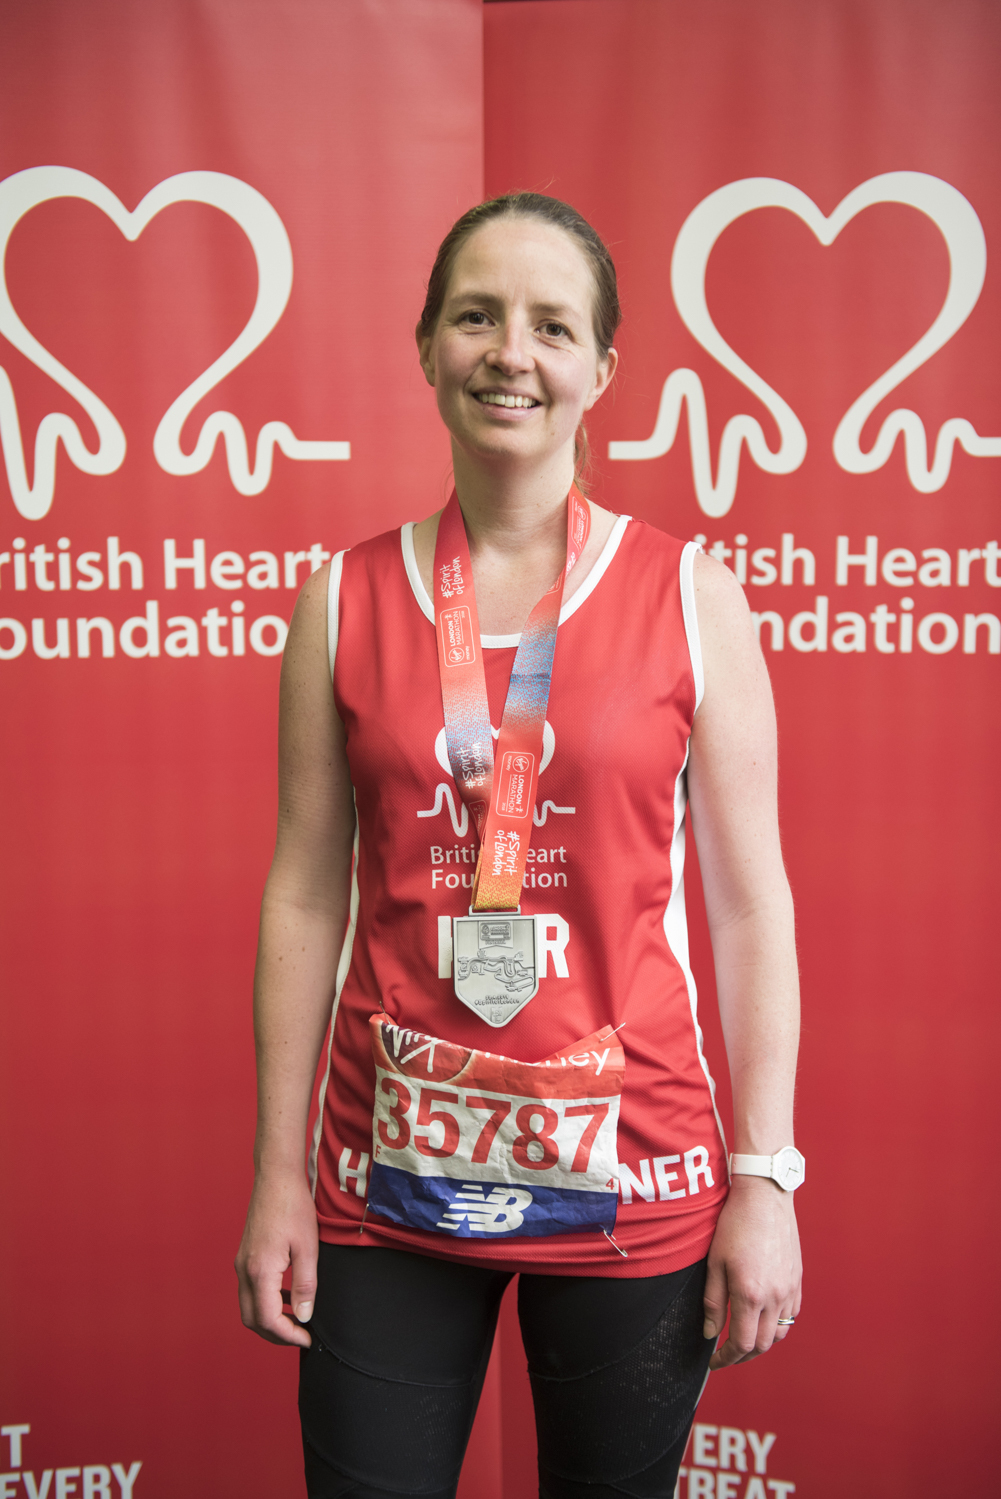 Kirstie Morris runs the London Marathon in memory of best friend Nicola. Picture: DFphotography.co.uk / Danny Fitzpatrick